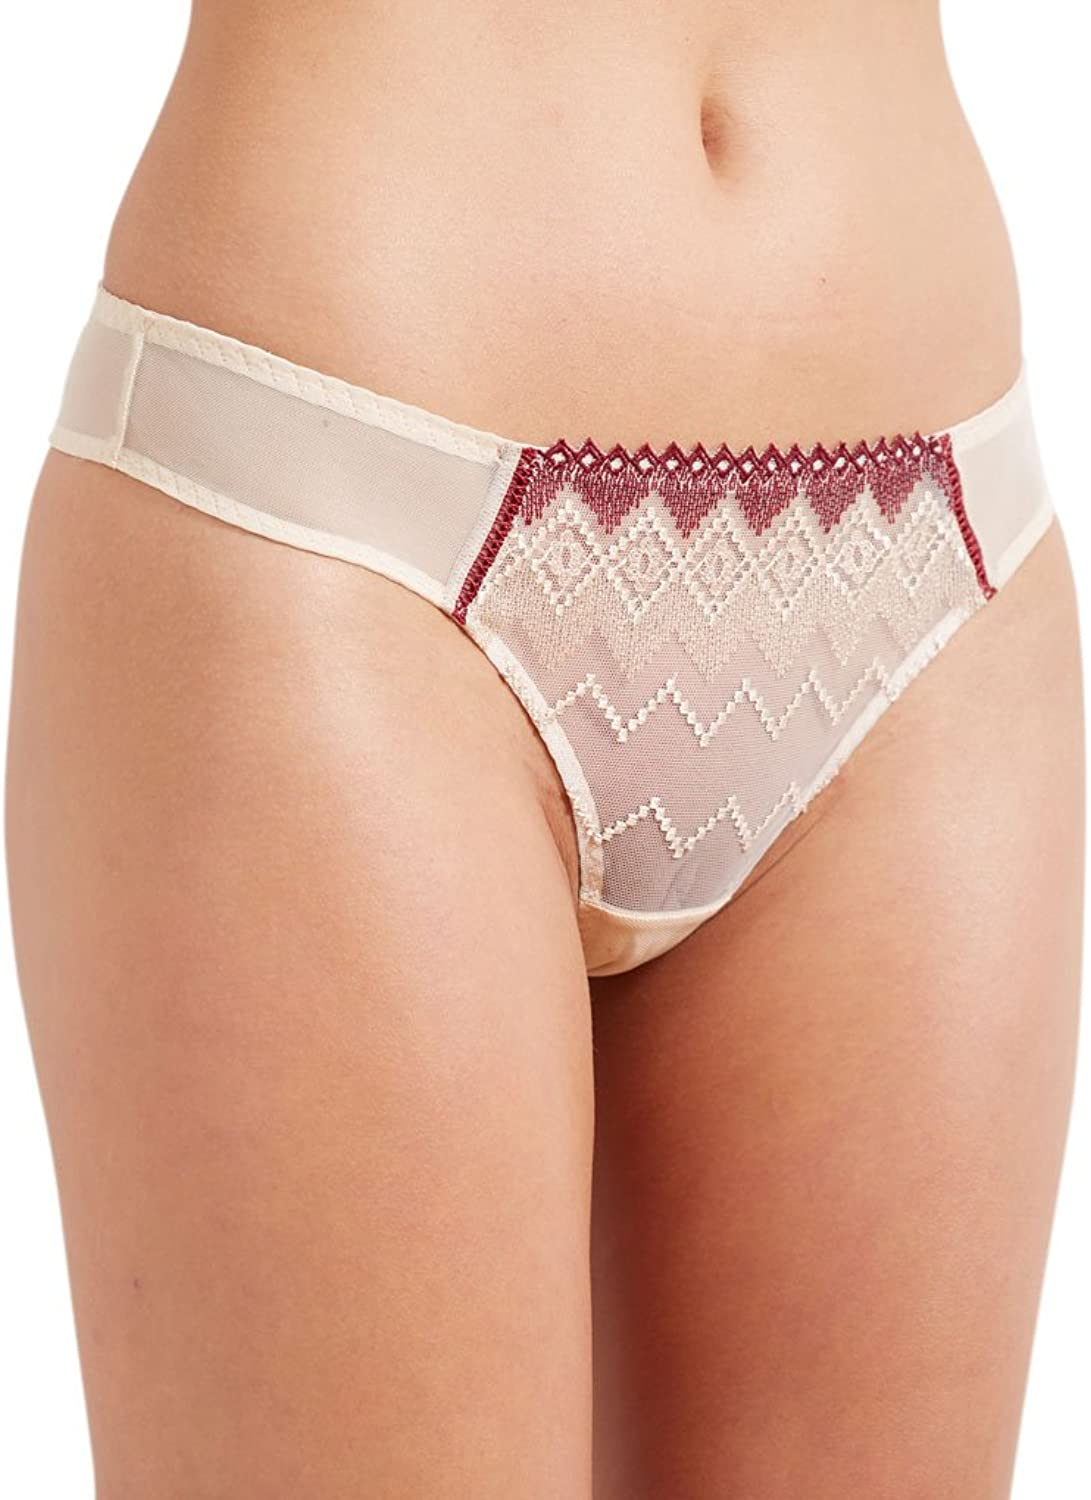 Barbara 223631 Women's Totem Liana Beige Embroidered Knicker Gstring Tanga